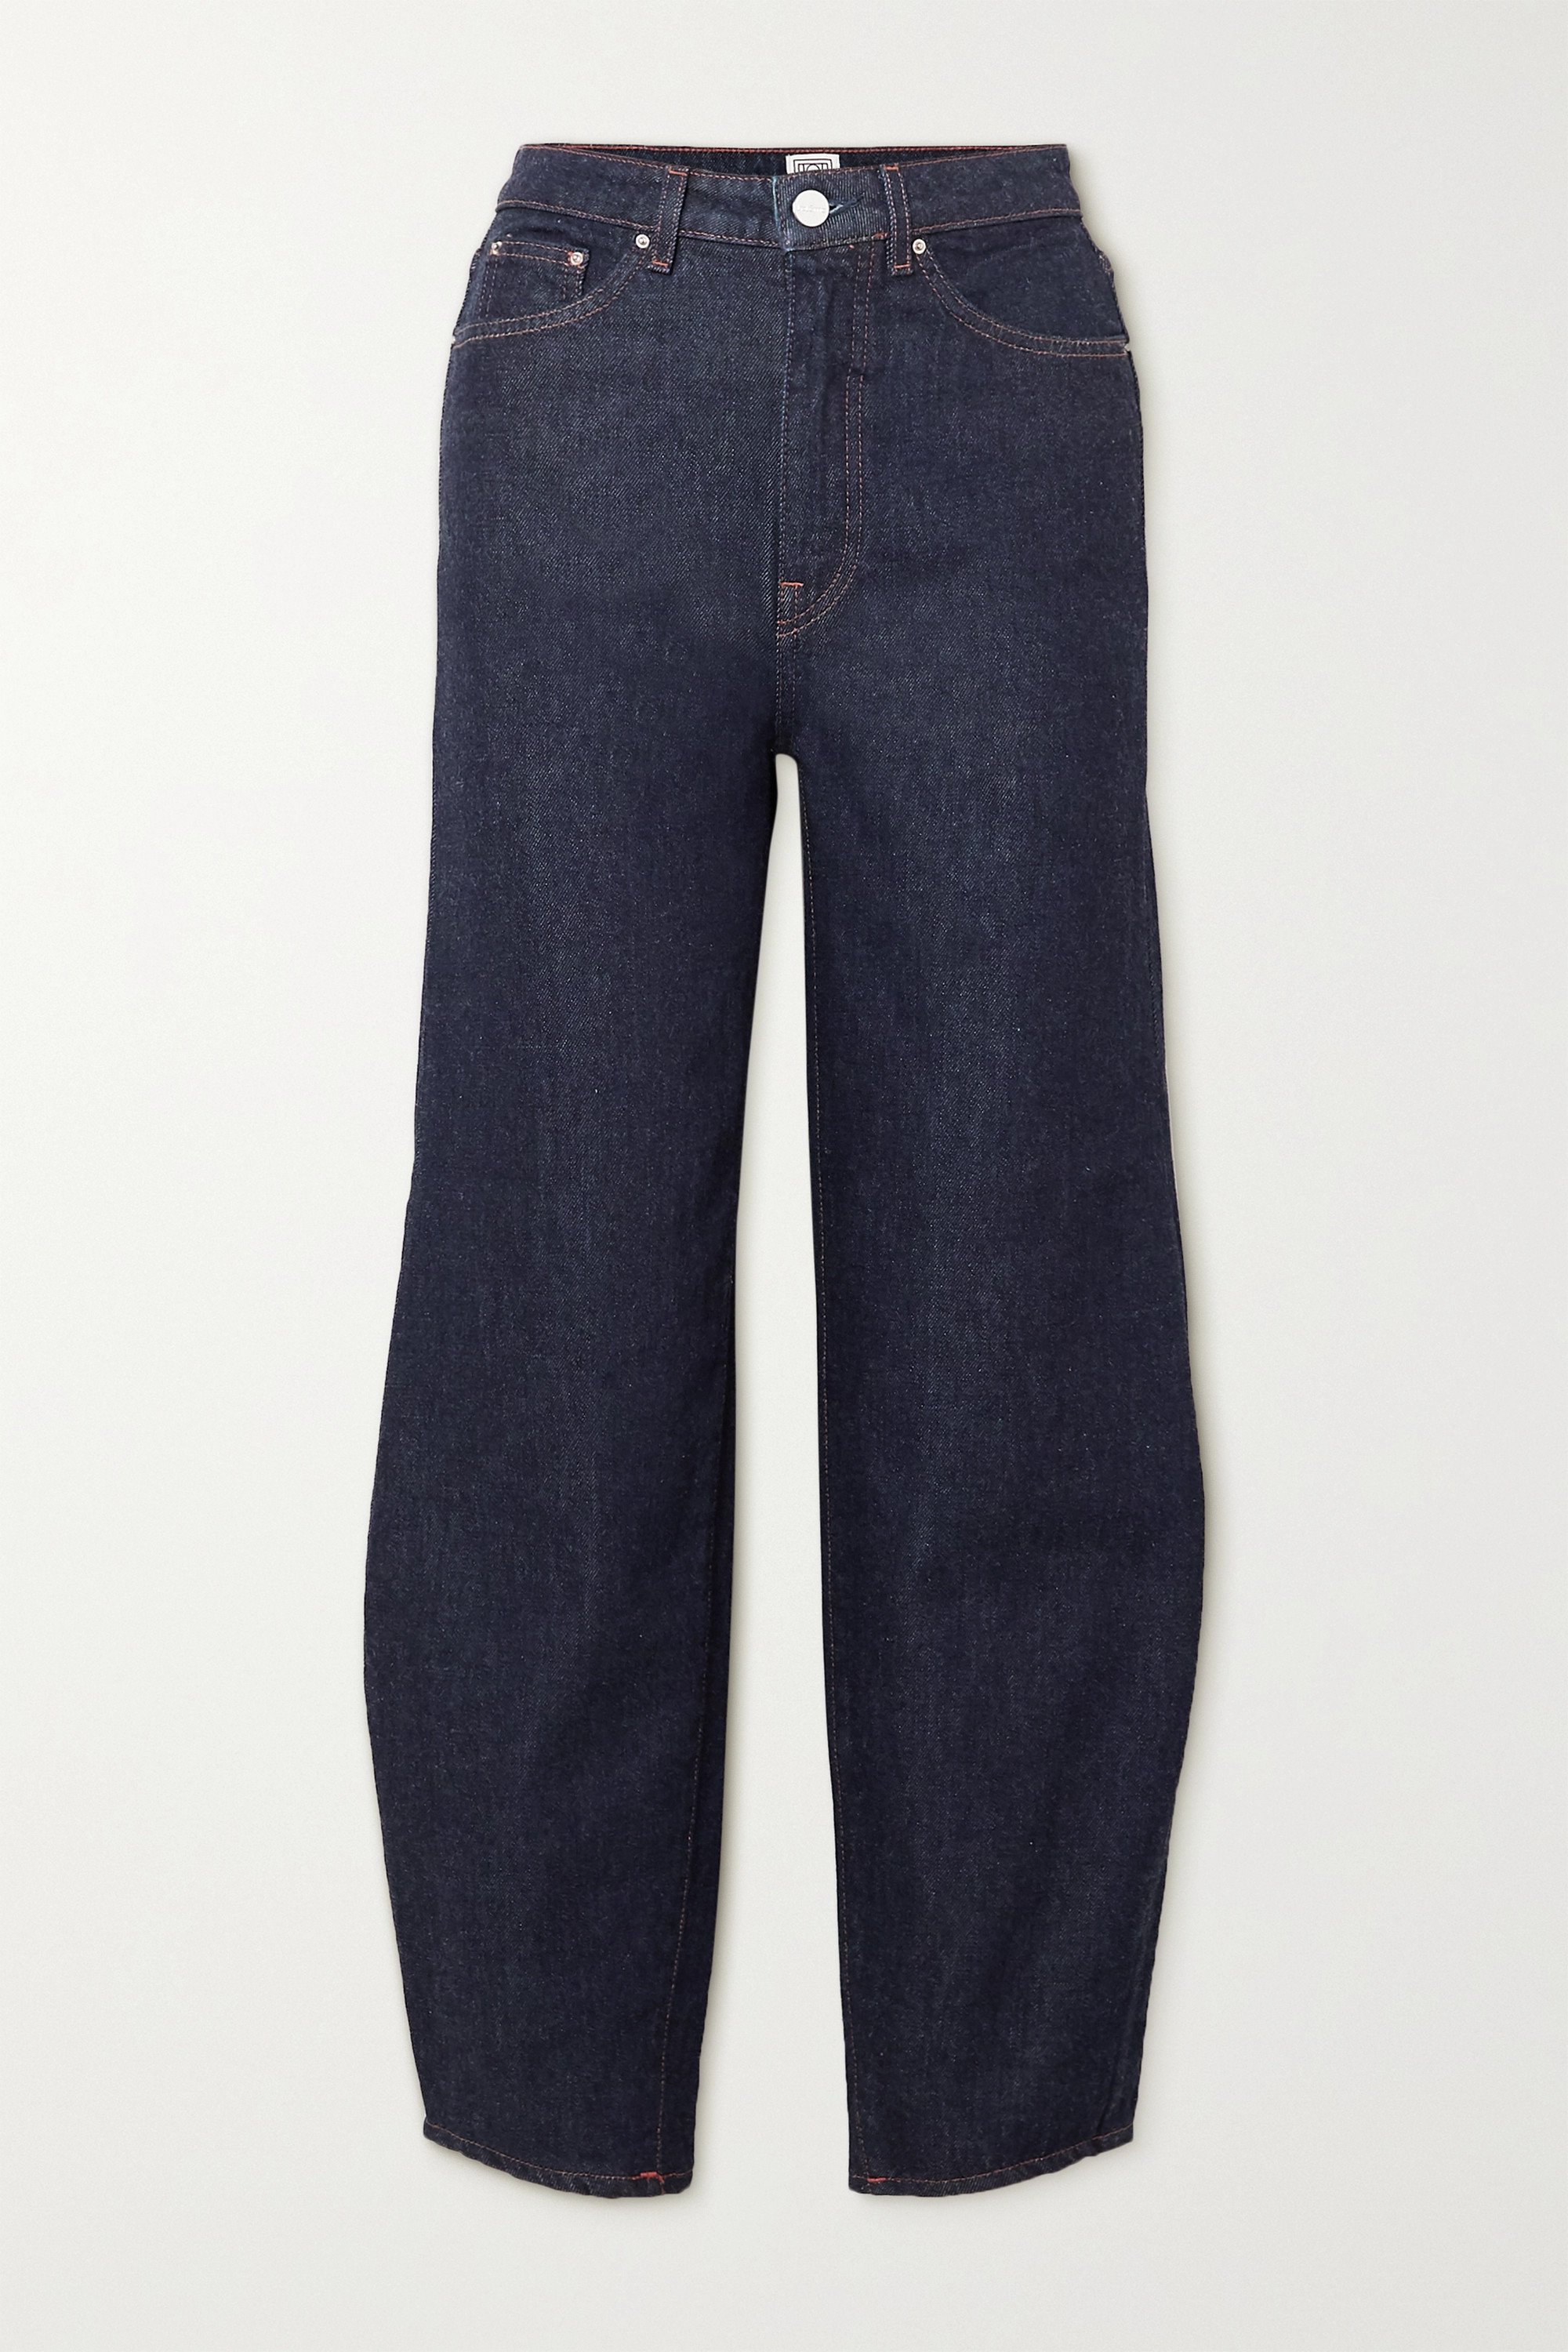 Totême - High-rise tapered jeans